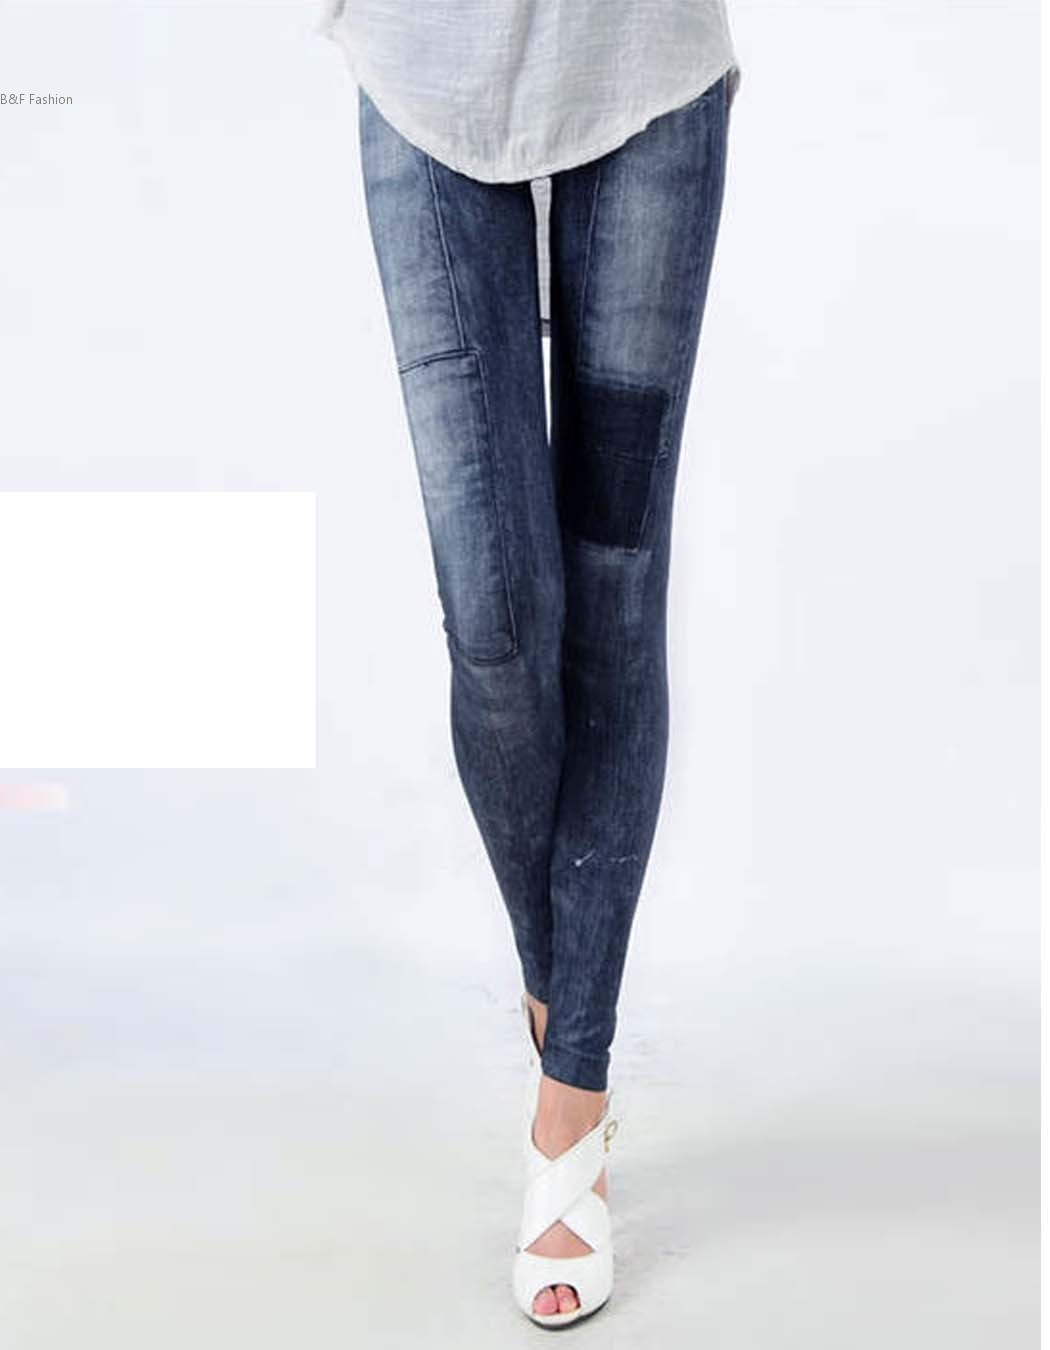 Women Fashion Jeggings Stretch Skinny Leggings Leg wear Pencil Pants Casual Jeans 30 цена 2016